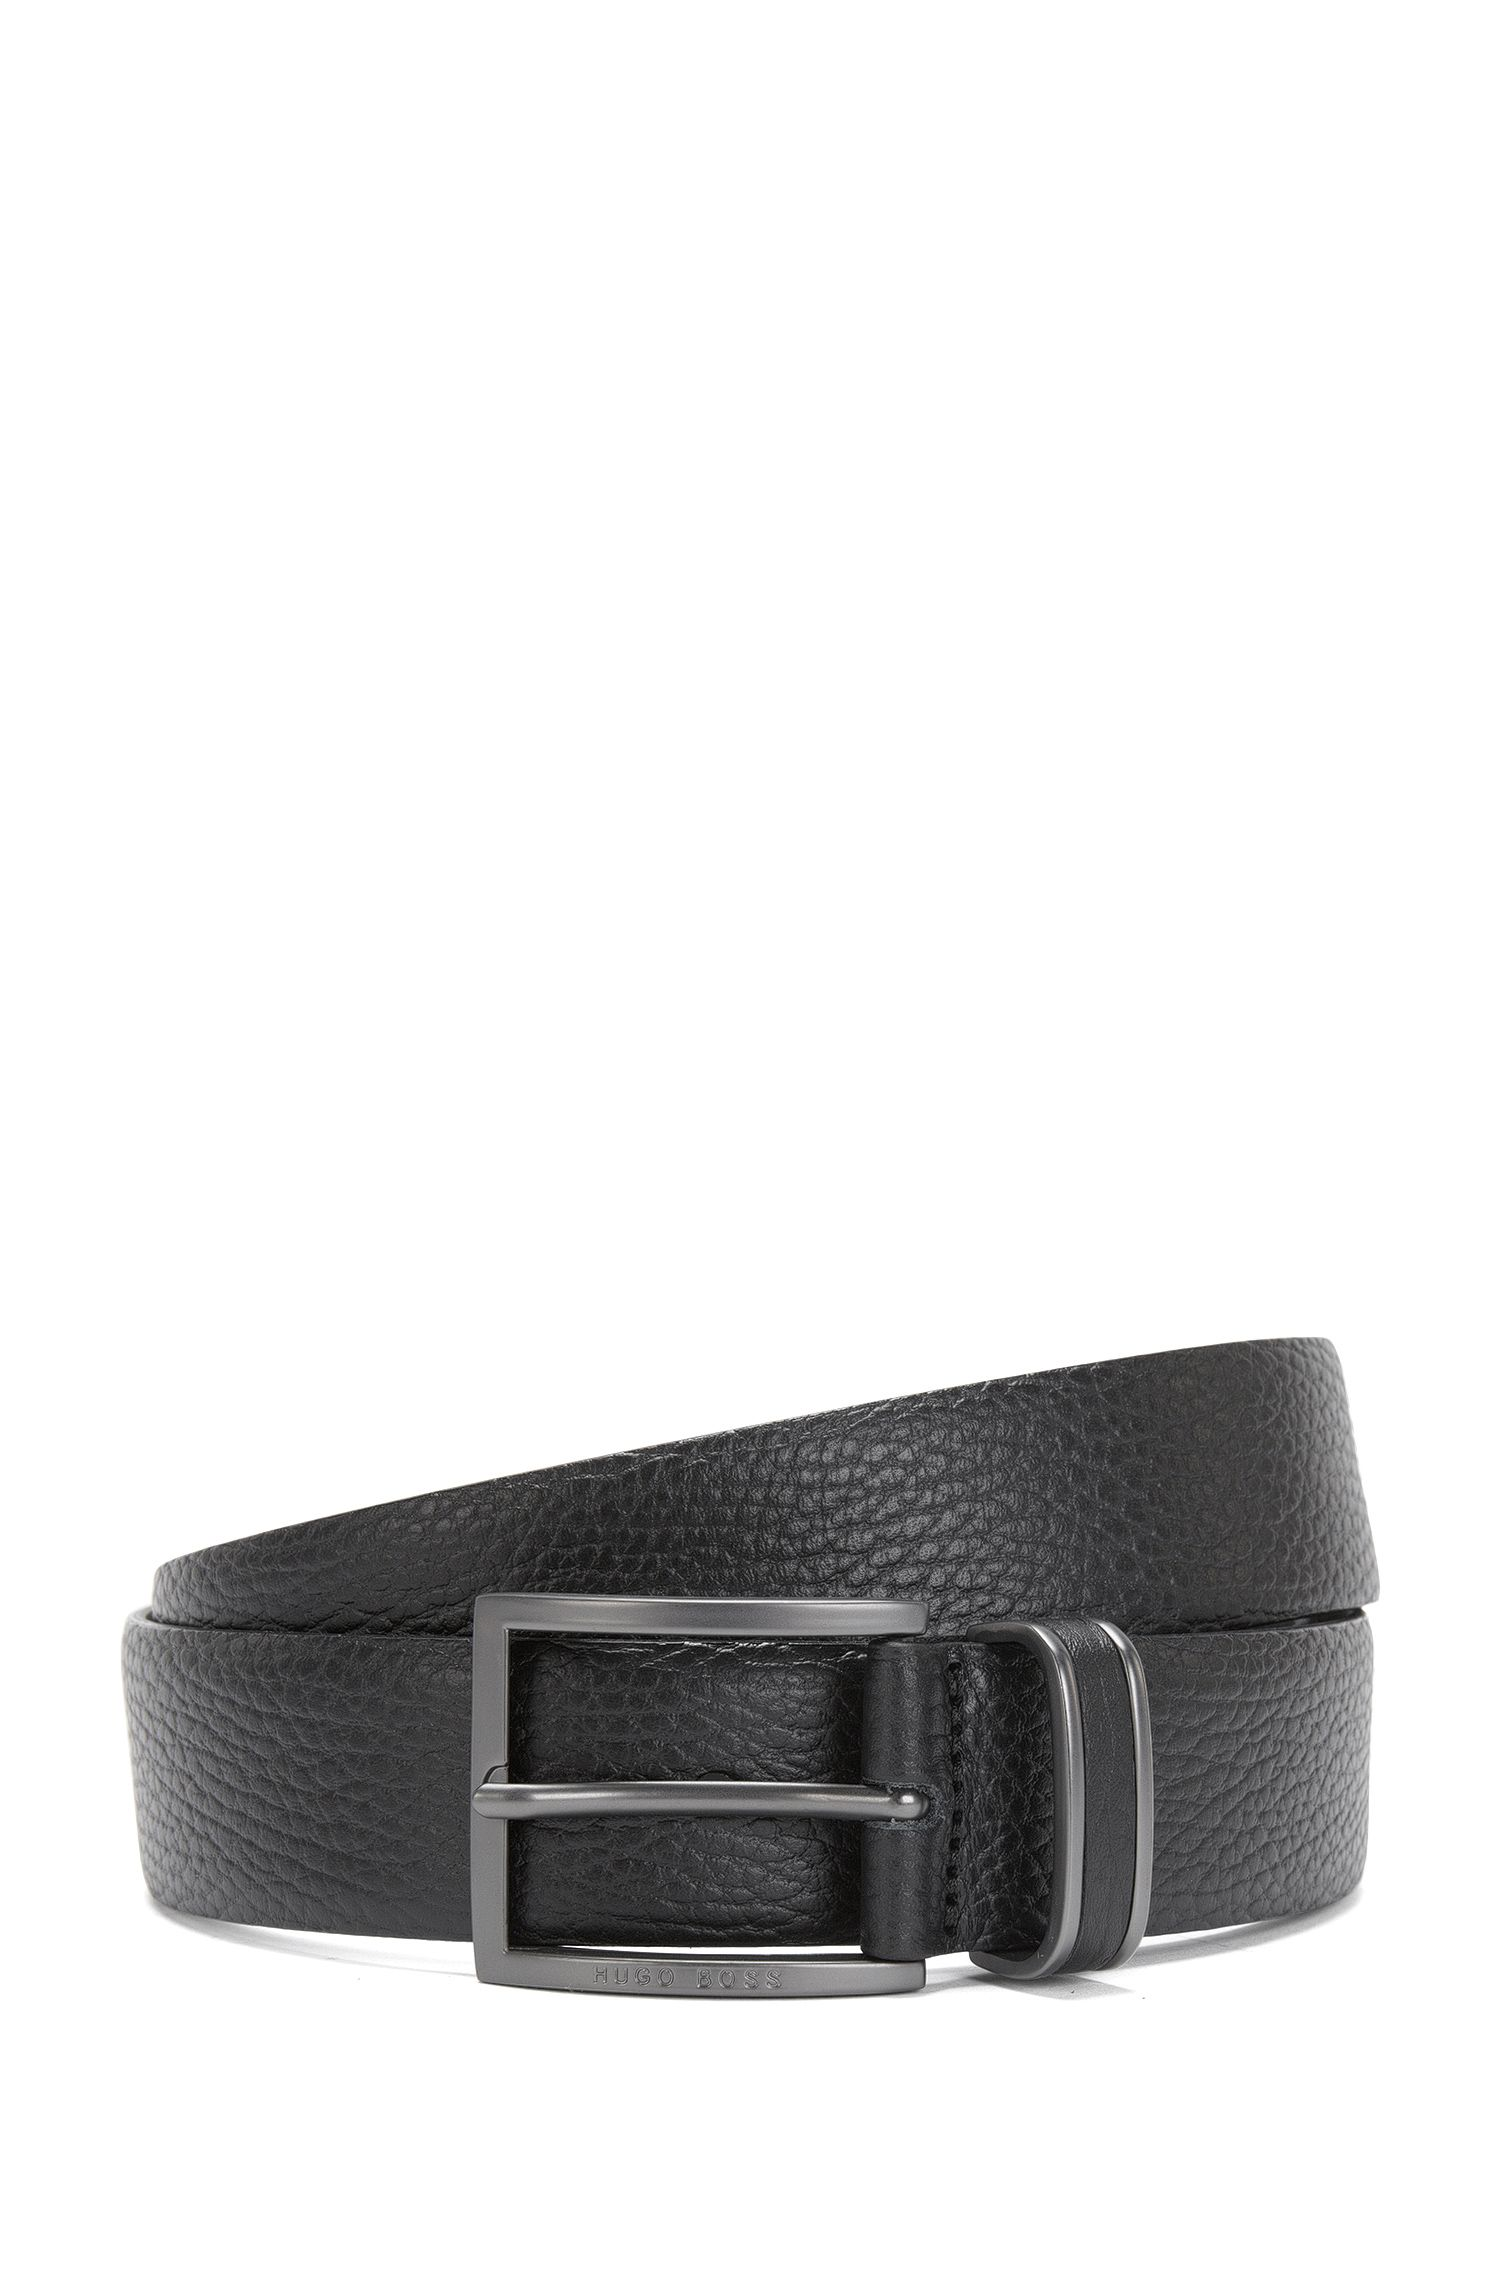 Italian Grained Leather Belt | Sopprin Sz Itgr